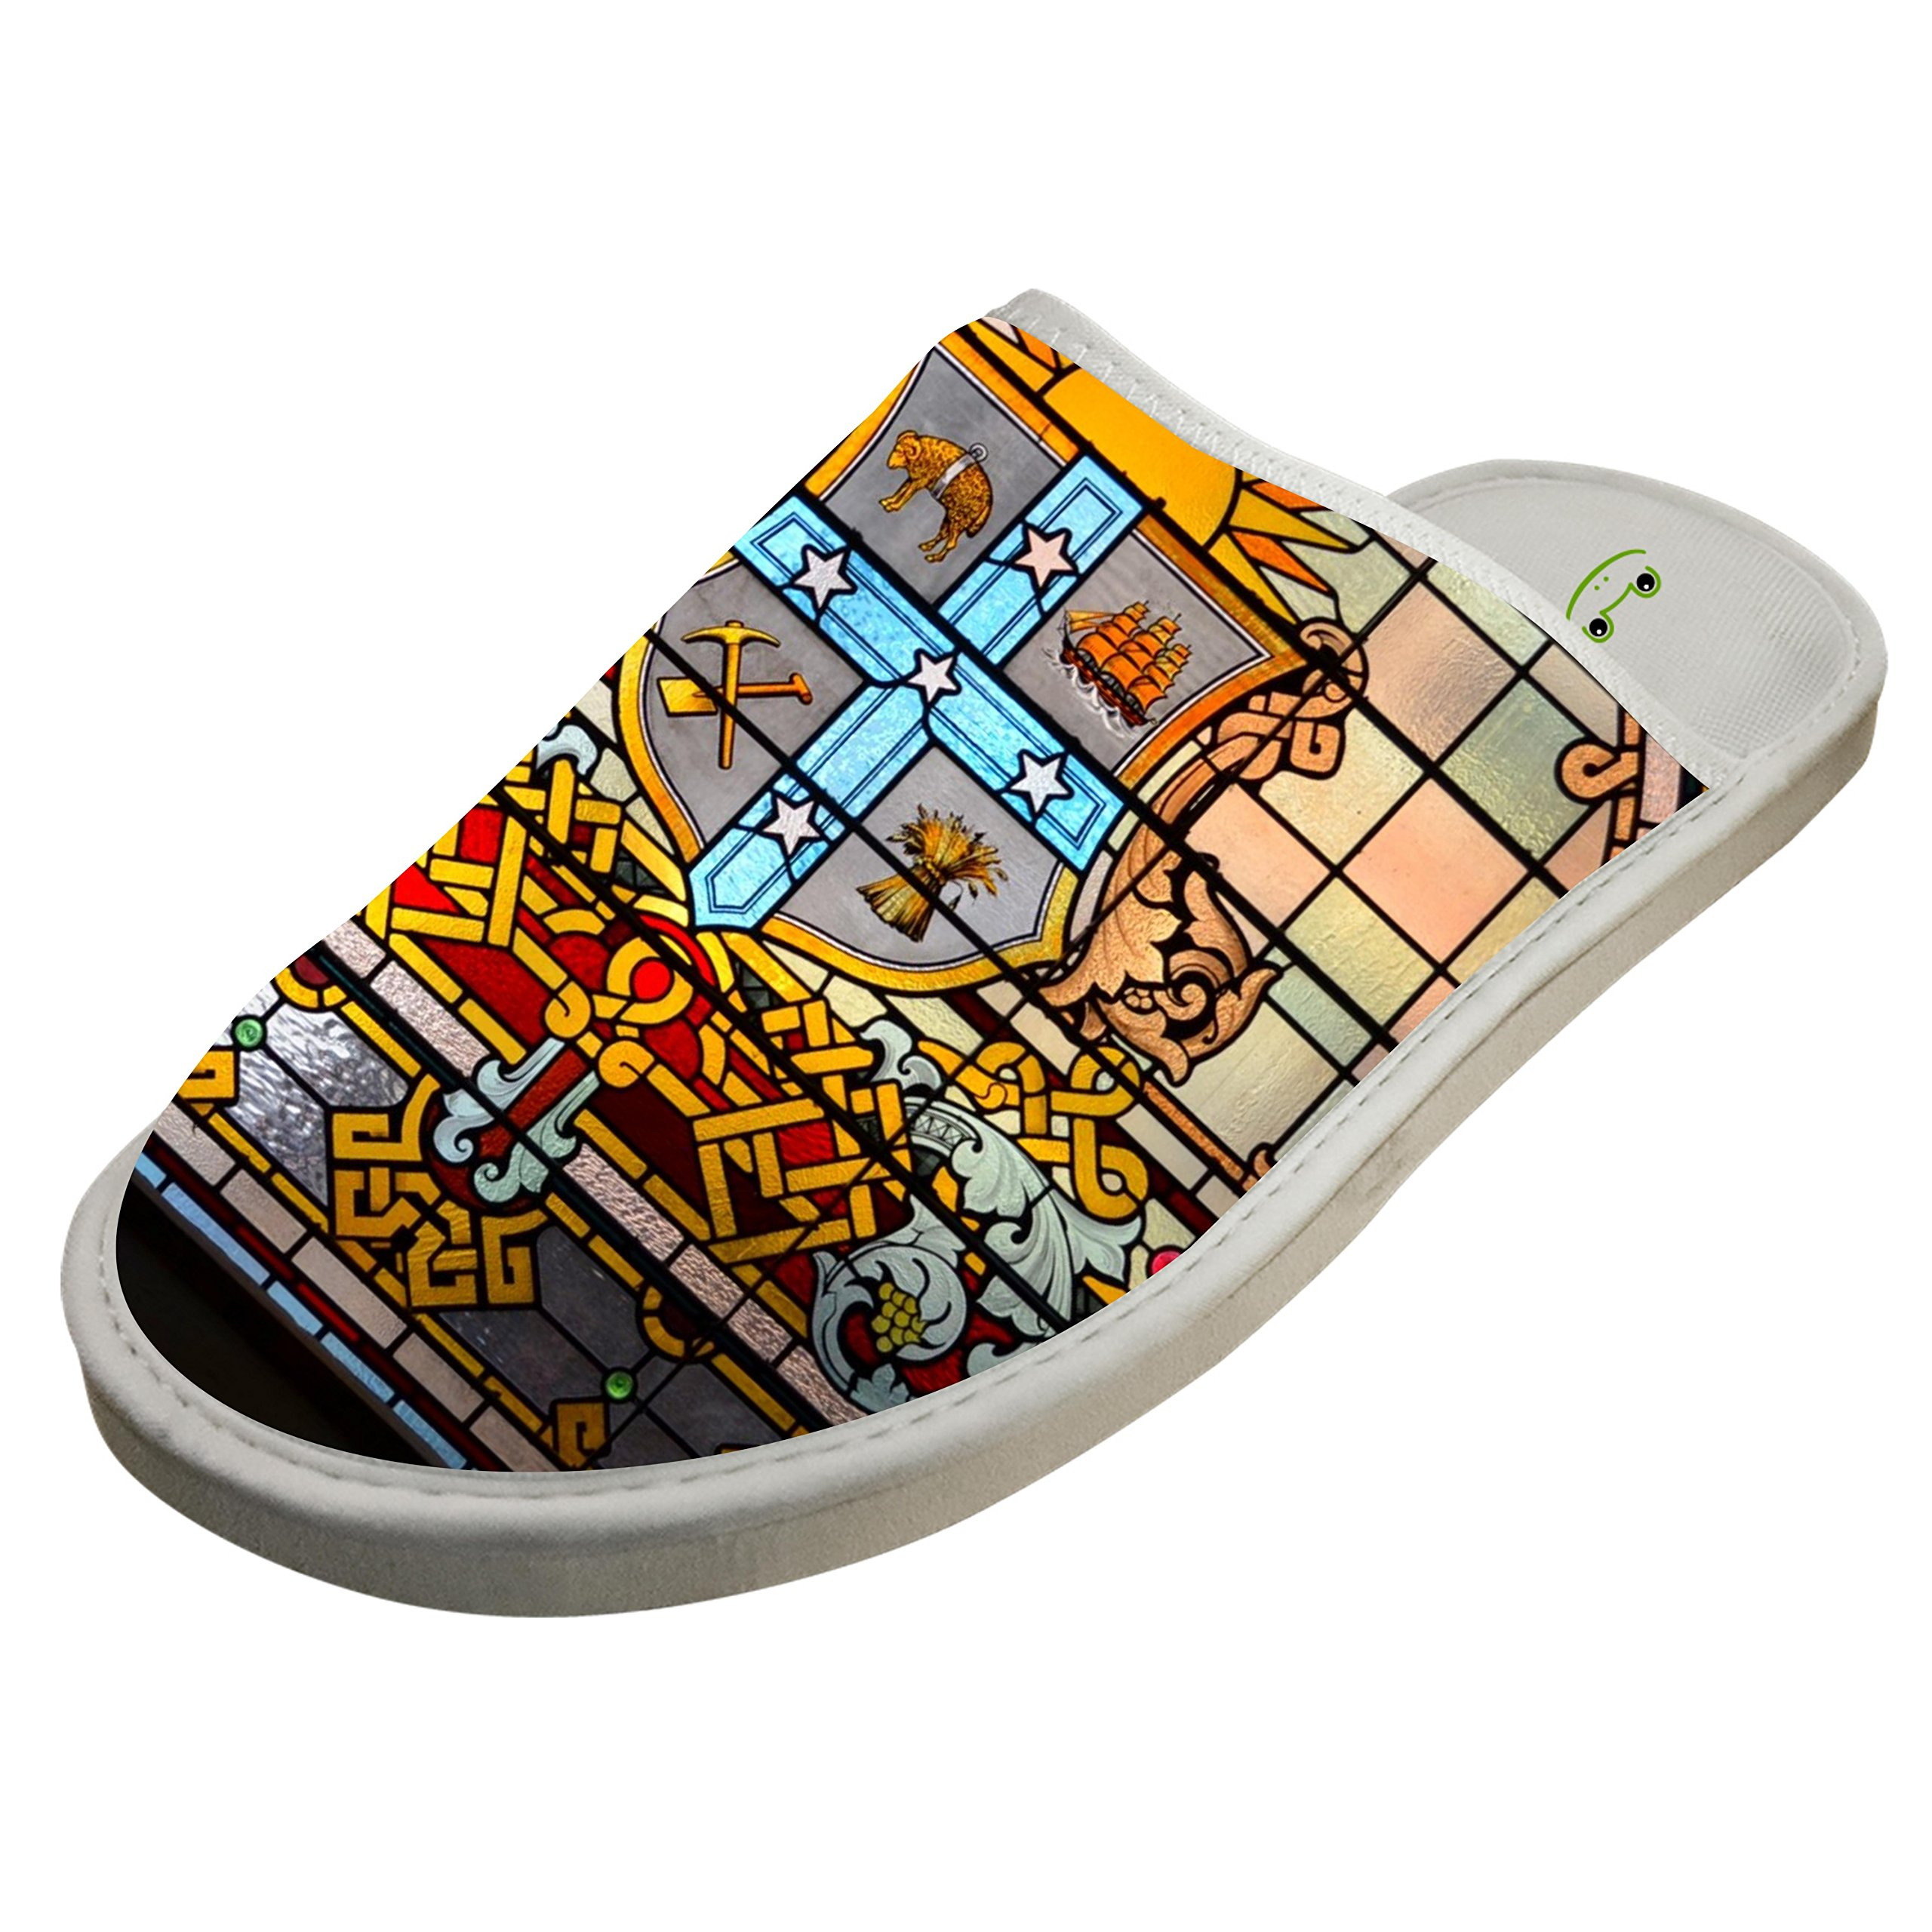 Slippers with Awesome Stained Glass Window 3D Print Indoor Sandals Soft Shoes Flat Winter Sleeppers 9 B(M) US